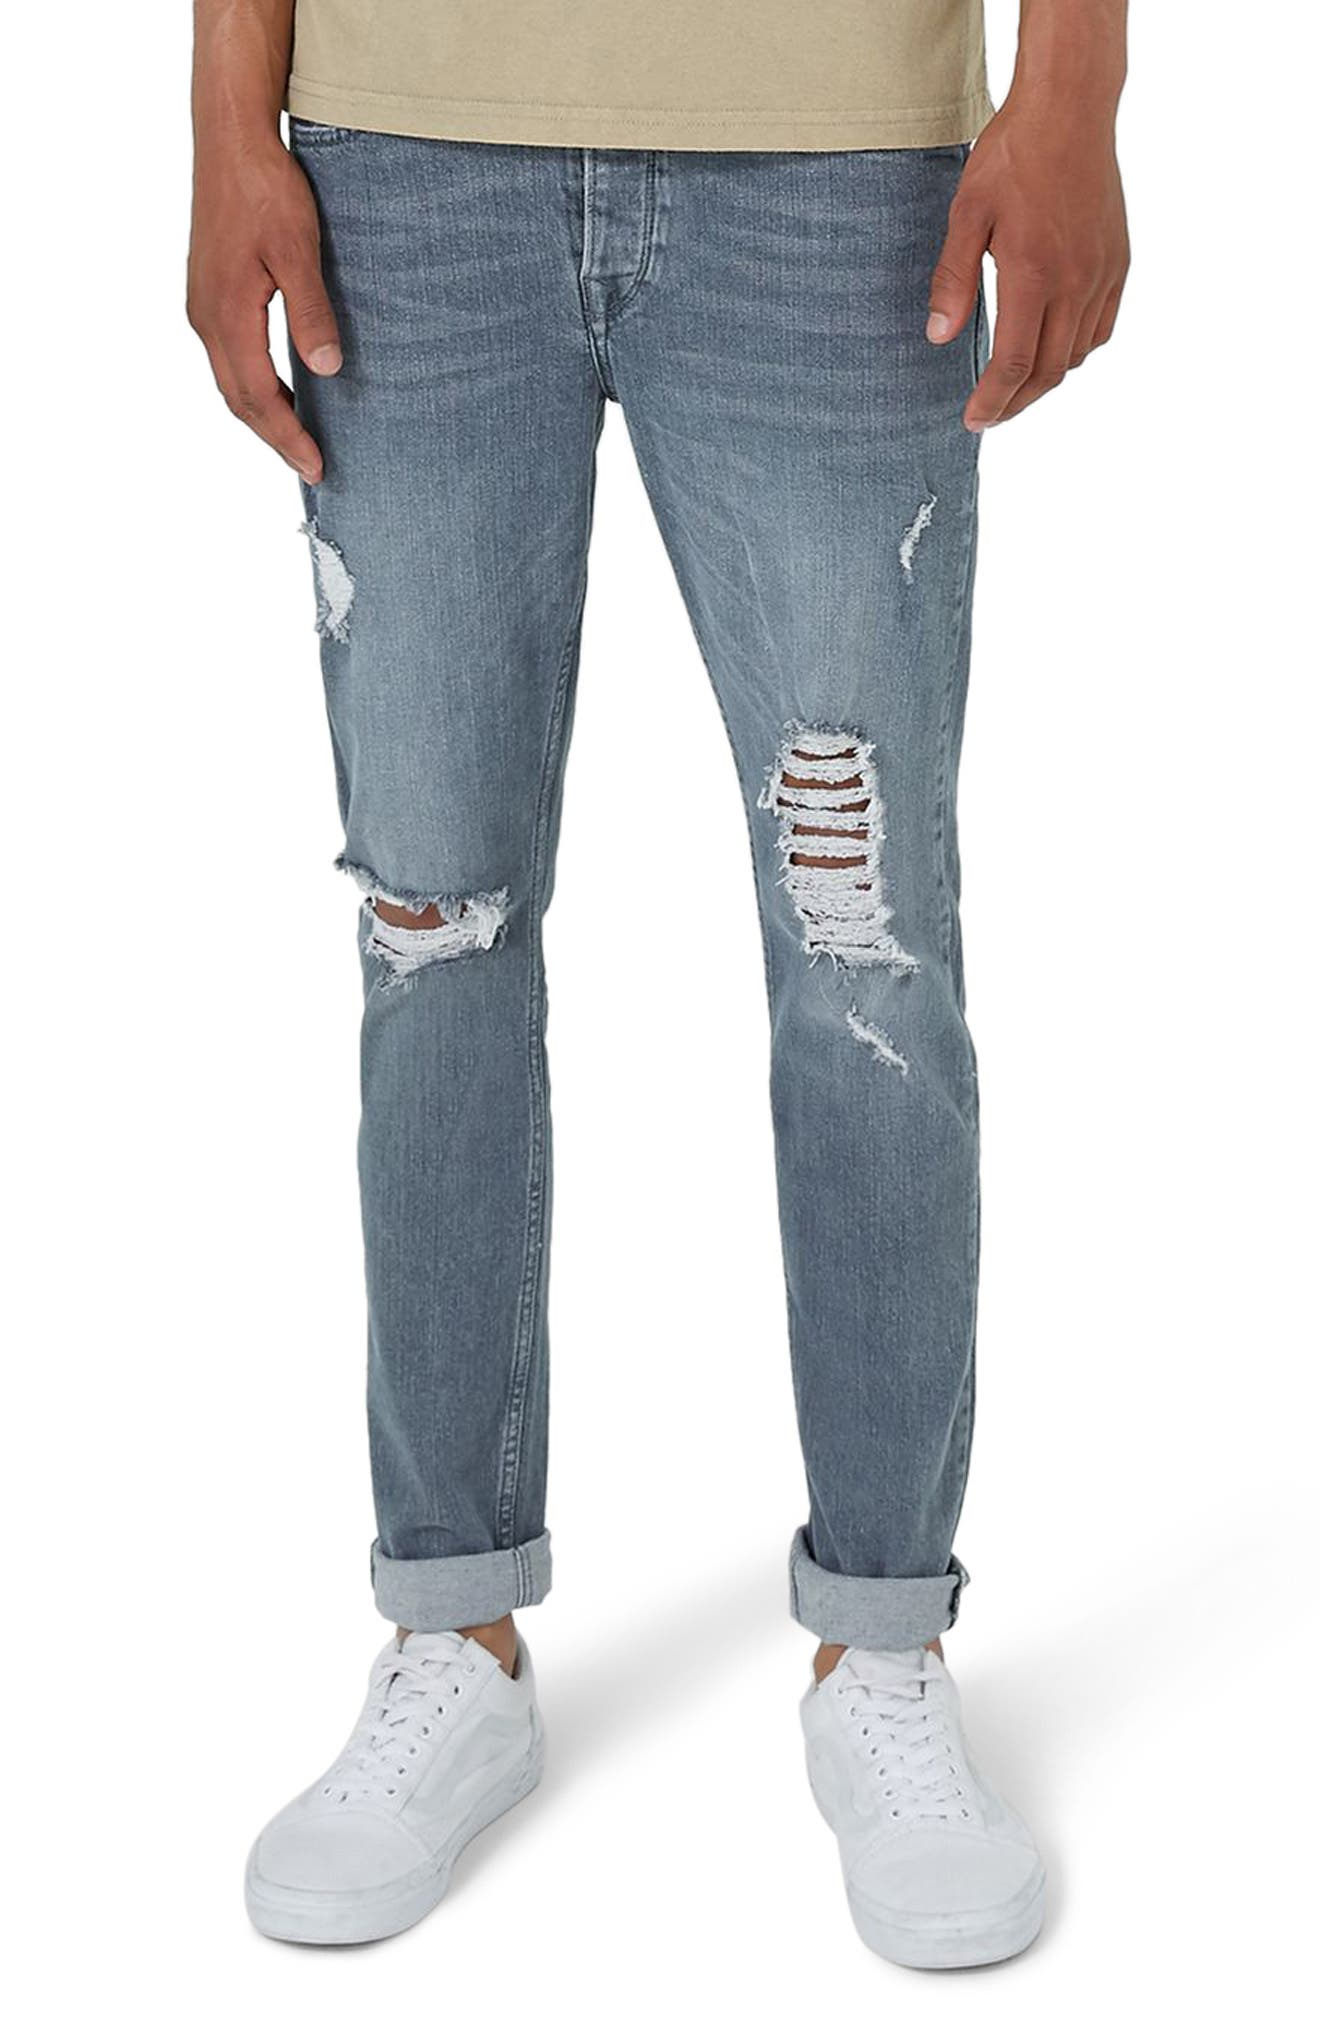 Extreme Rip Stretch Jeans,                         Main,                         color,